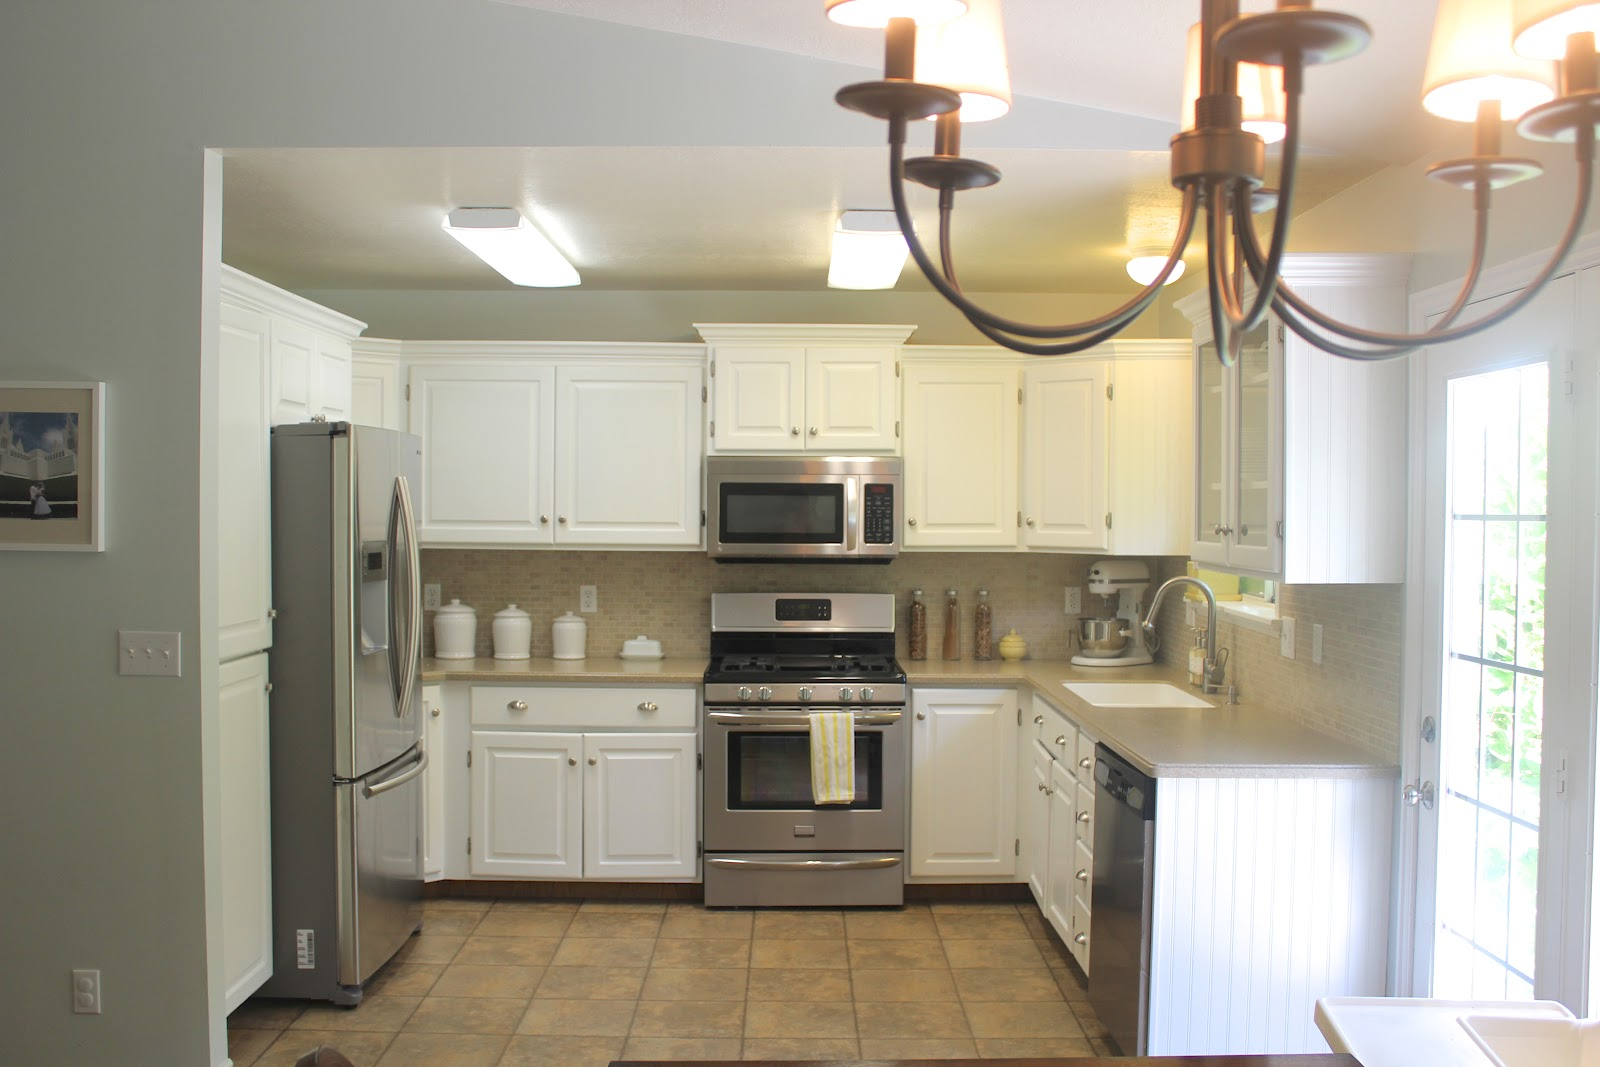 Kitchen remodel big results on a not so big budget for Beautiful kitchen remodels